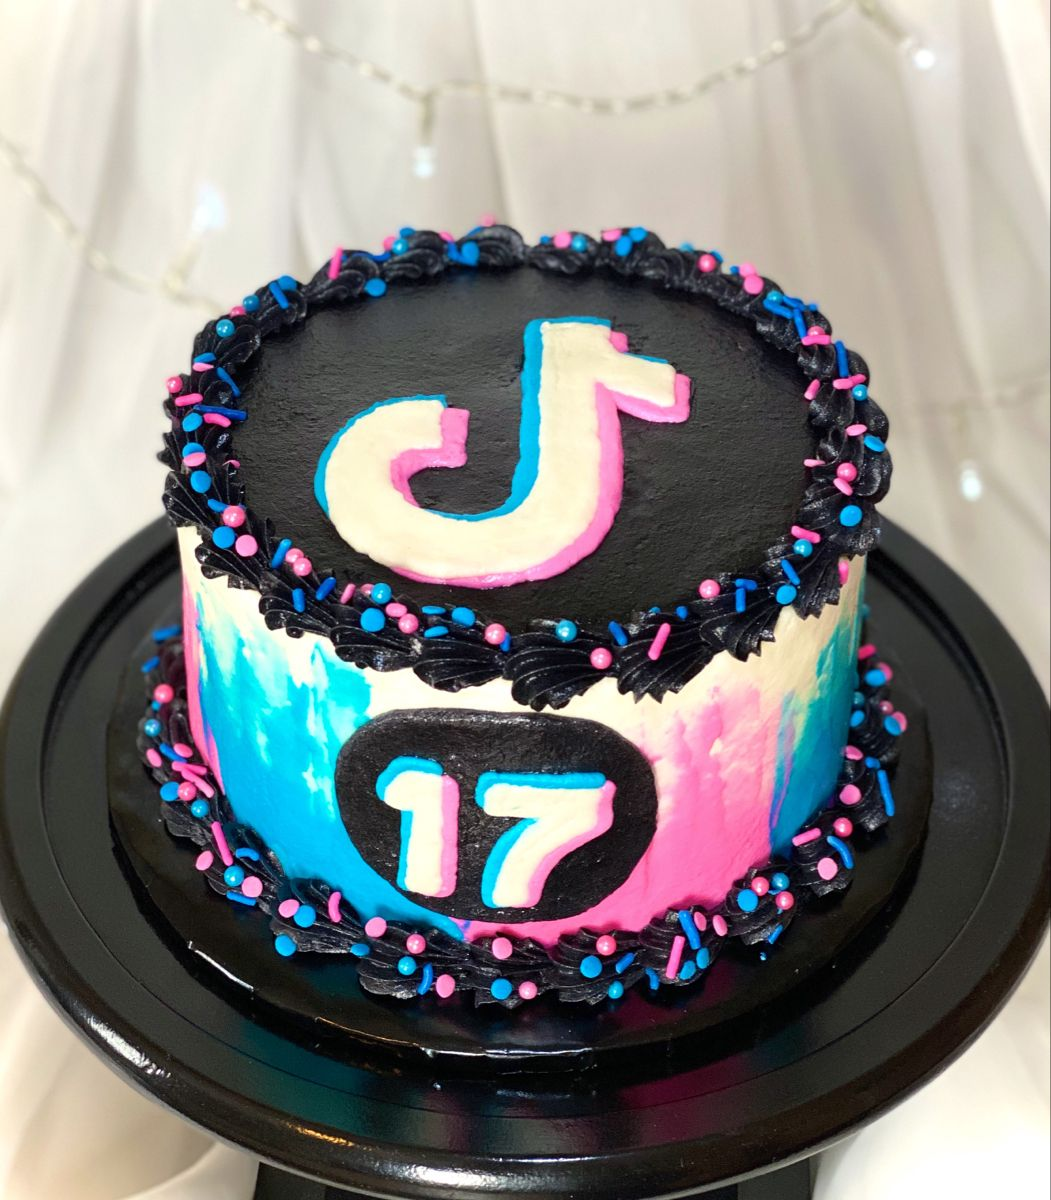 Tik Tok Cake By Taylor Made Confections 14th Birthday Cakes 12th Birthday Cake 13 Birthday Cake